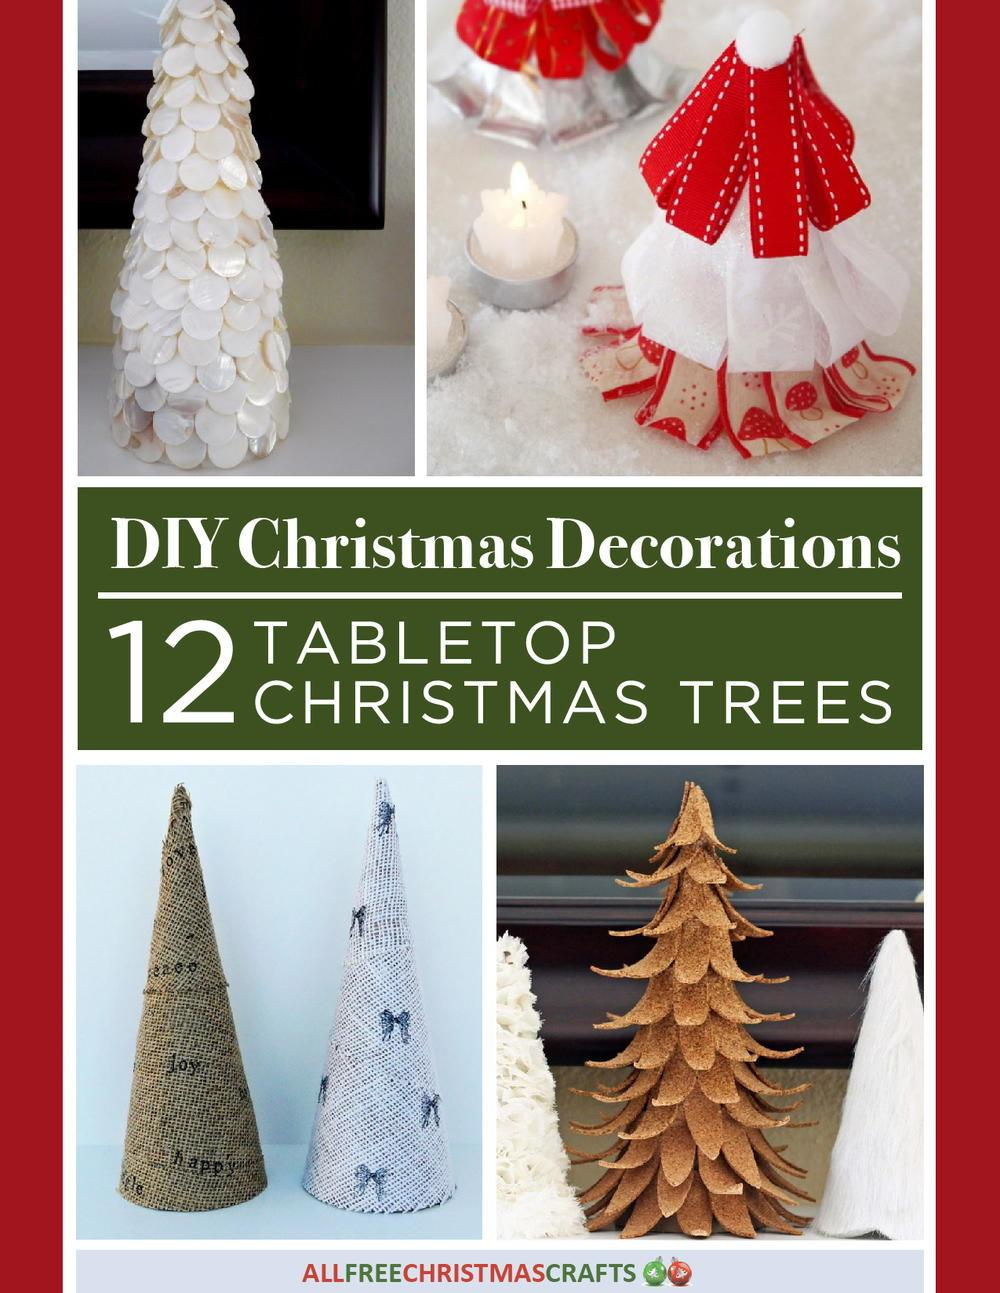 Diy Christmas Decorations Tabletop Trees